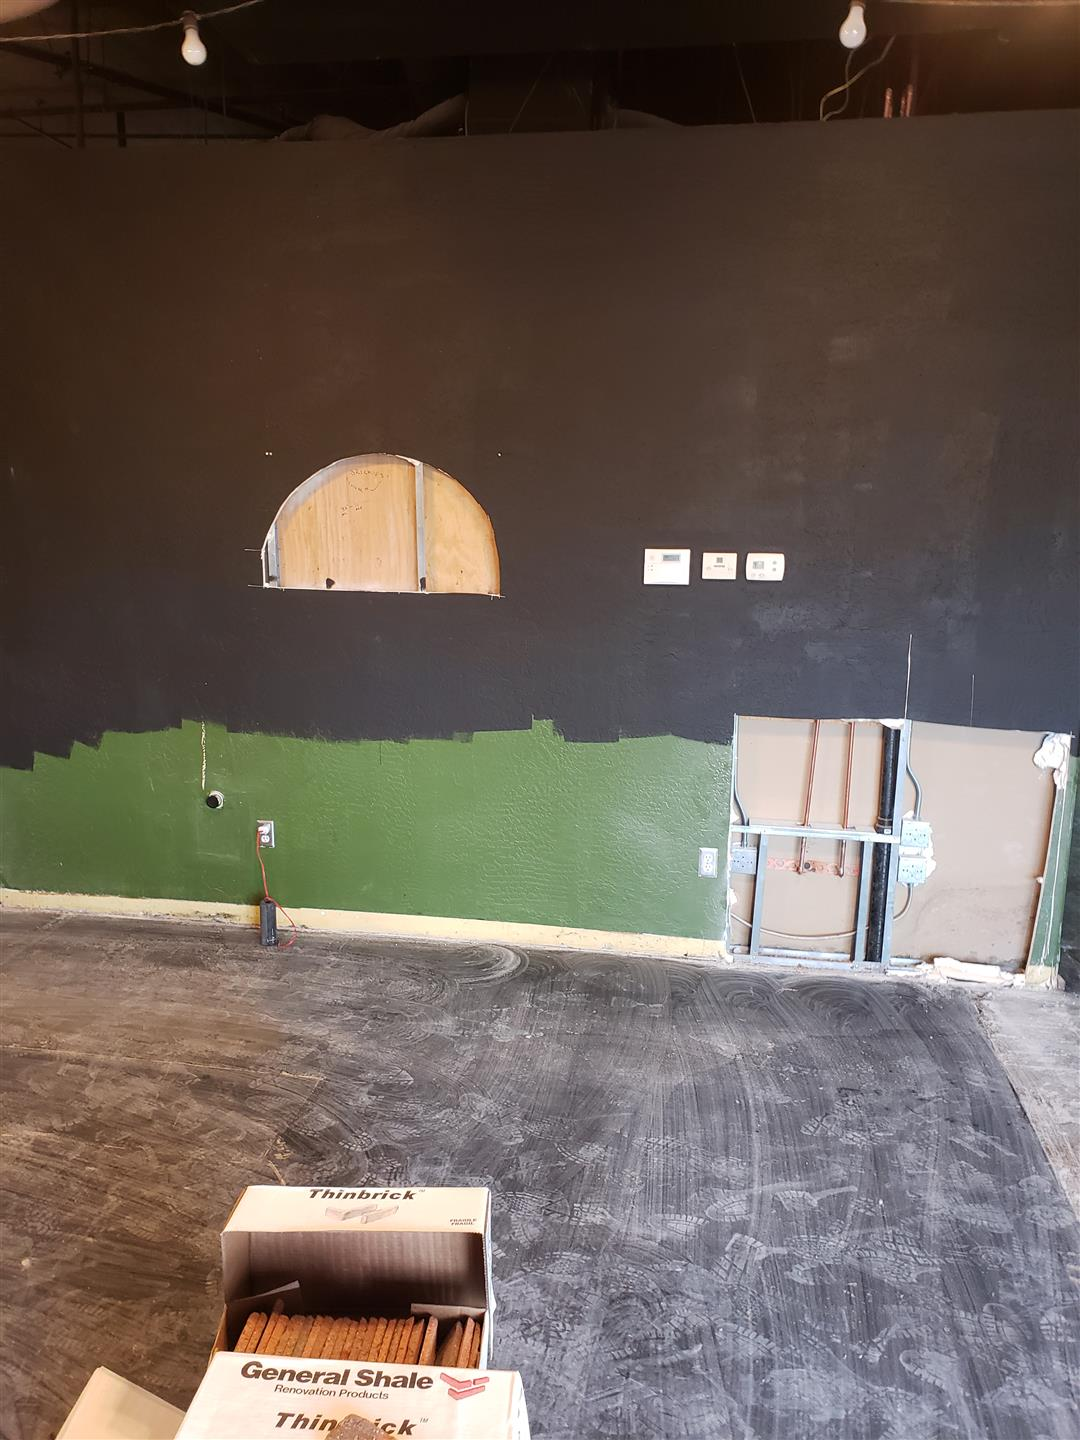 painting mural on wall during building renovations